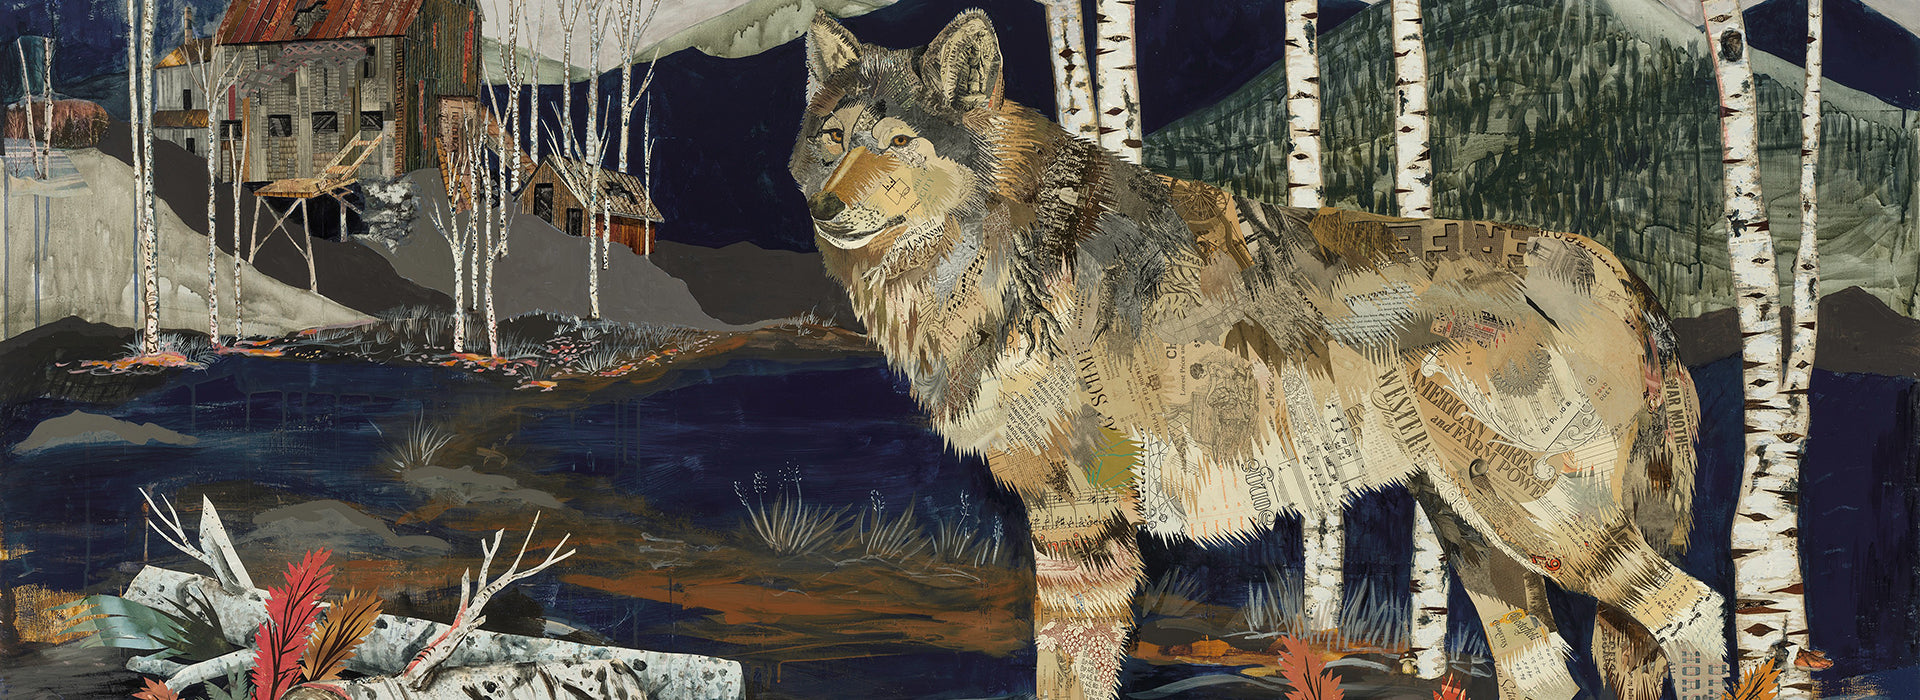 the story of the Miner's Apparition wolf collage